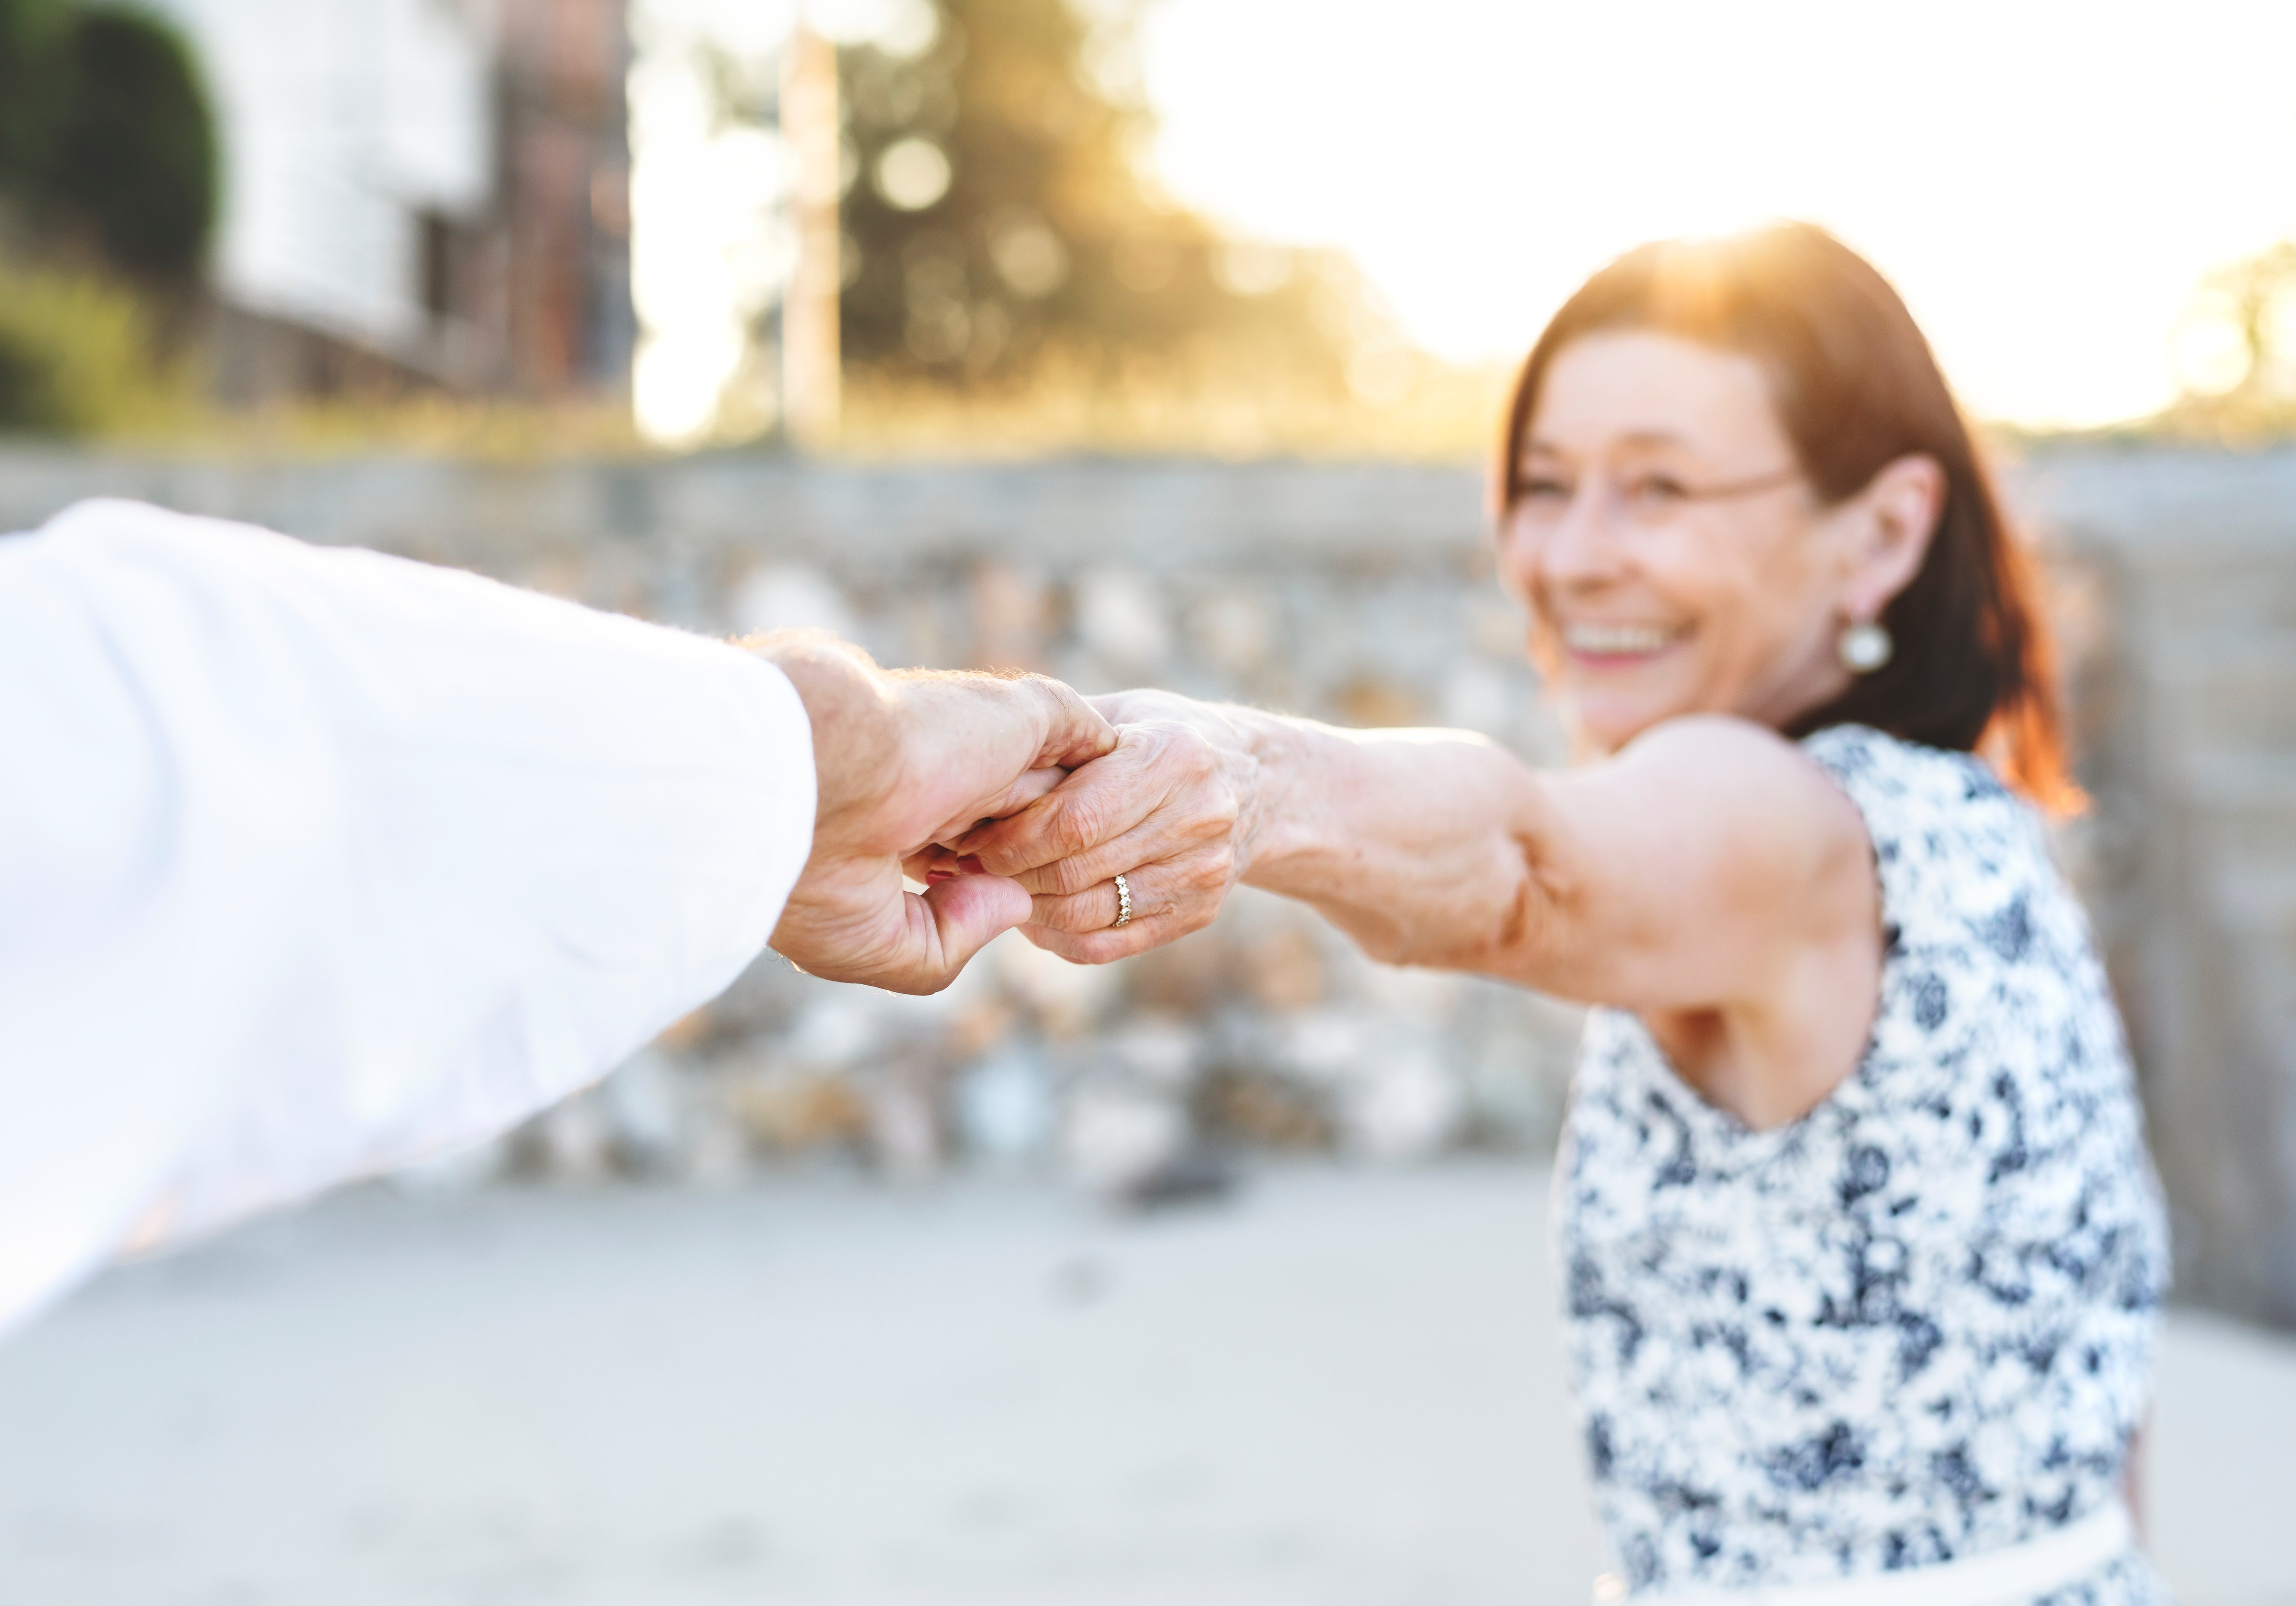 A pair of old man and woman holding hands.   Source: Pexels